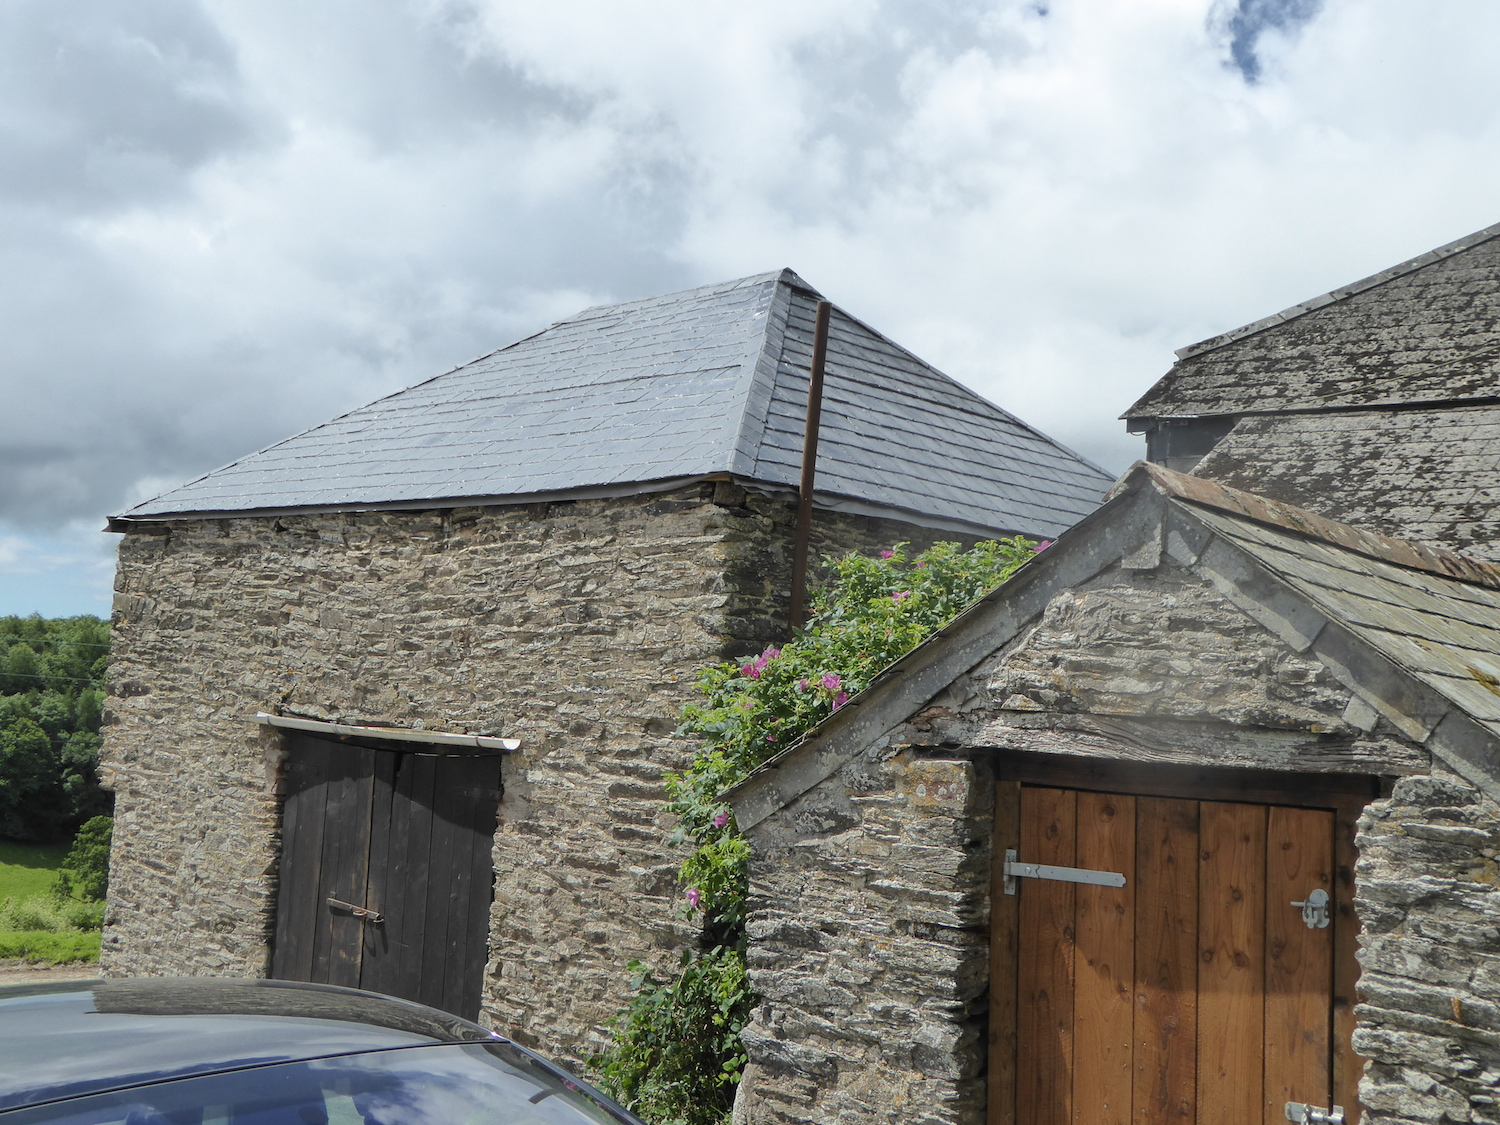 Barn Roof Using Grp Slate Tiled Roofing Sheets Shapes Grp